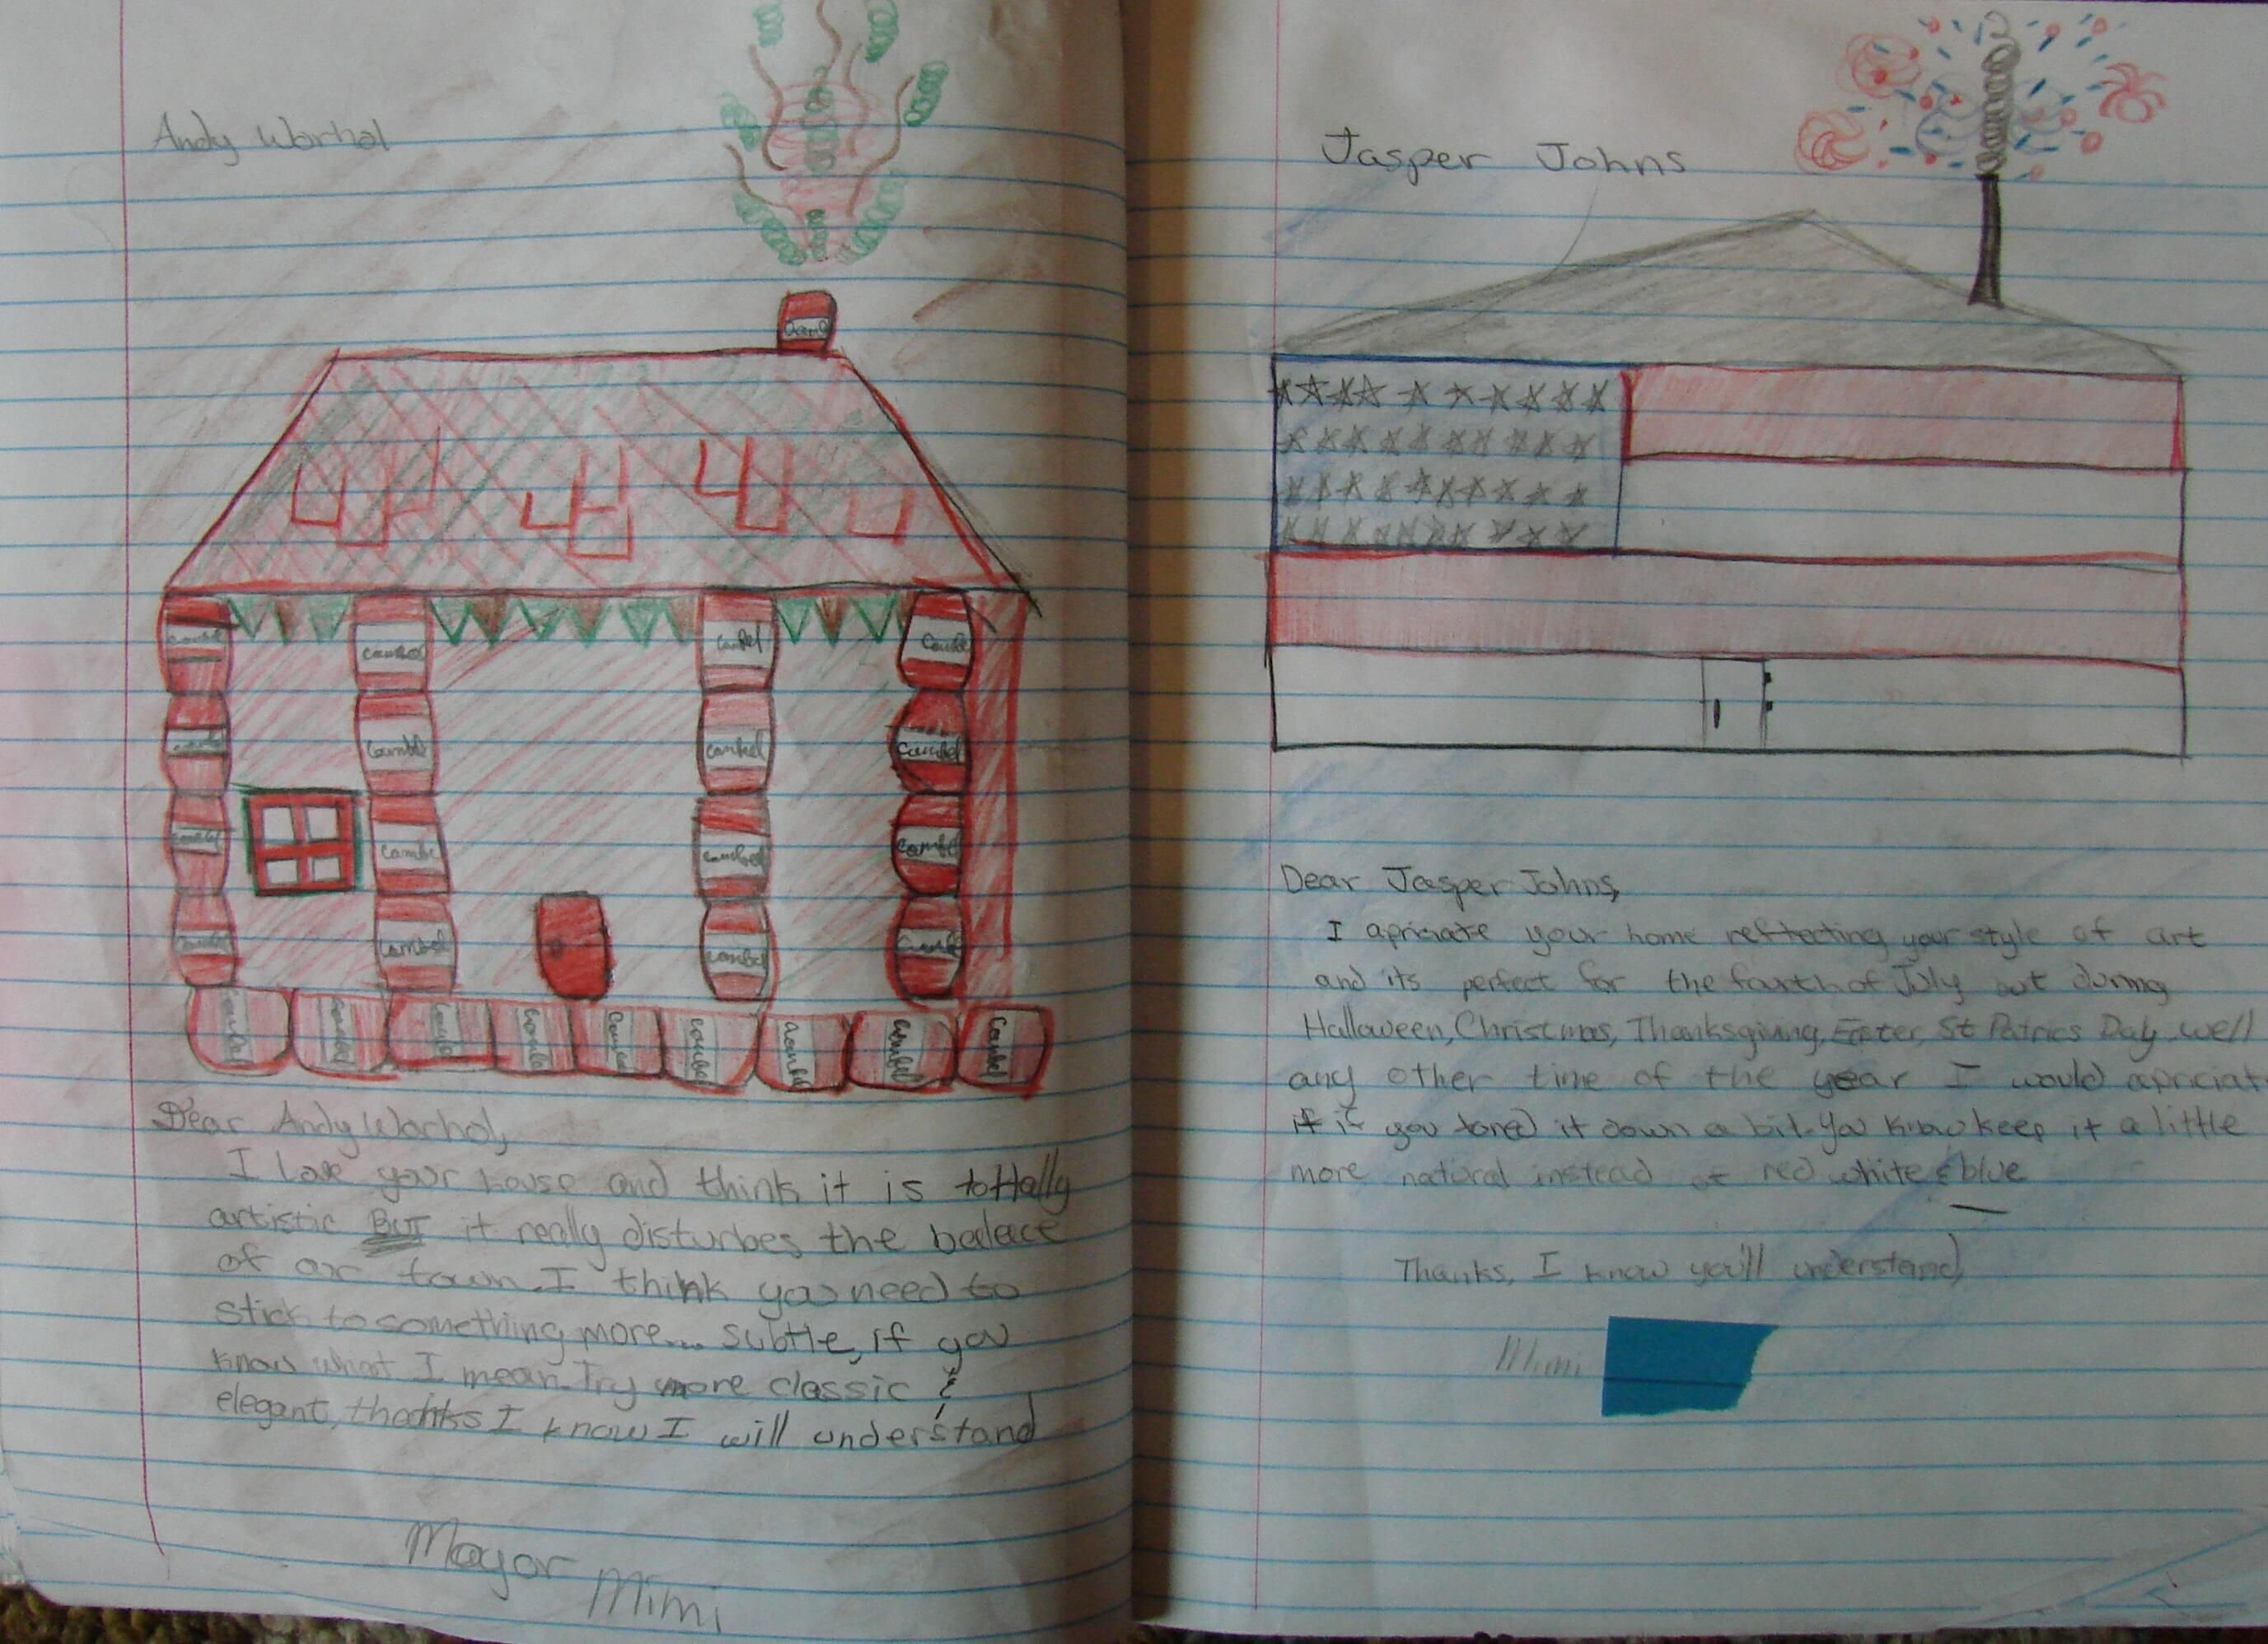 Mimi imagined her two neighbors were Andy Warhol and Jasper Johns, and wrote two letters critiquing the style in which they painted their houses.  Here's the online lesson: http://corbettharrison.com/GT/Pigasso-Mootisse.htm